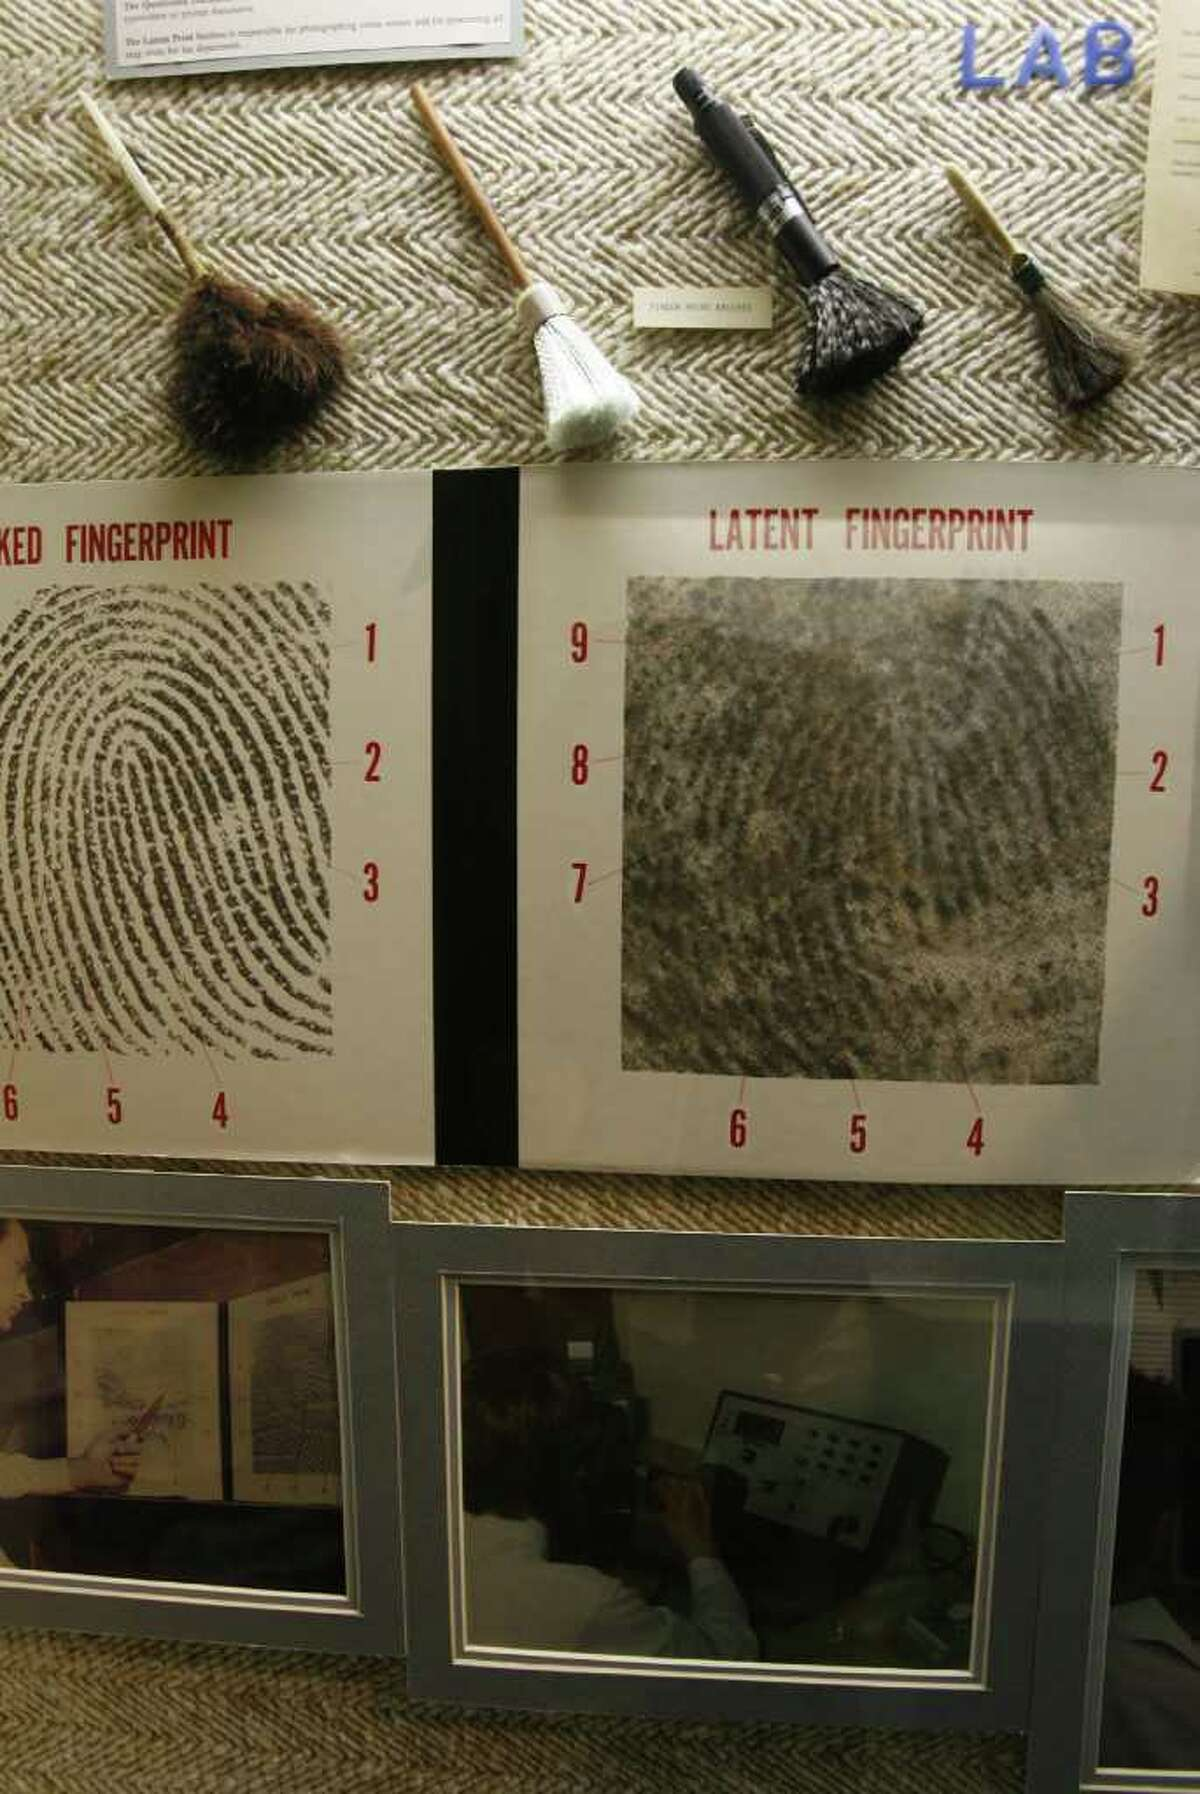 Crime lab brushes and fingerprints are on display at the Houston Police Department's museum, which is located inside the department's Police Academy.